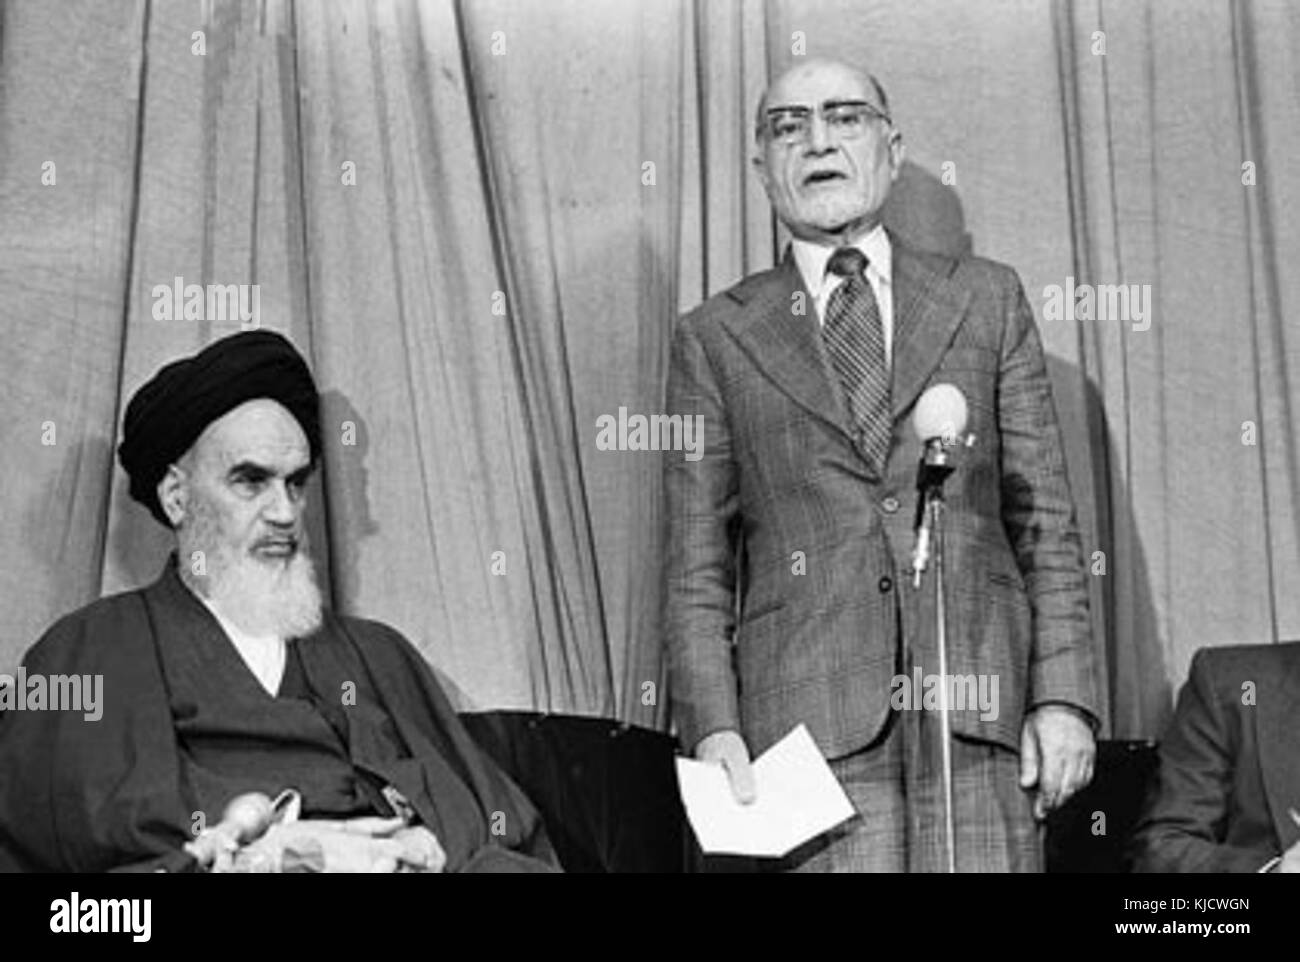 Non Muslim Perspective On The Revolution Of Imam Hussain: Ruhollah Khomeini Black And White Stock Photos & Images